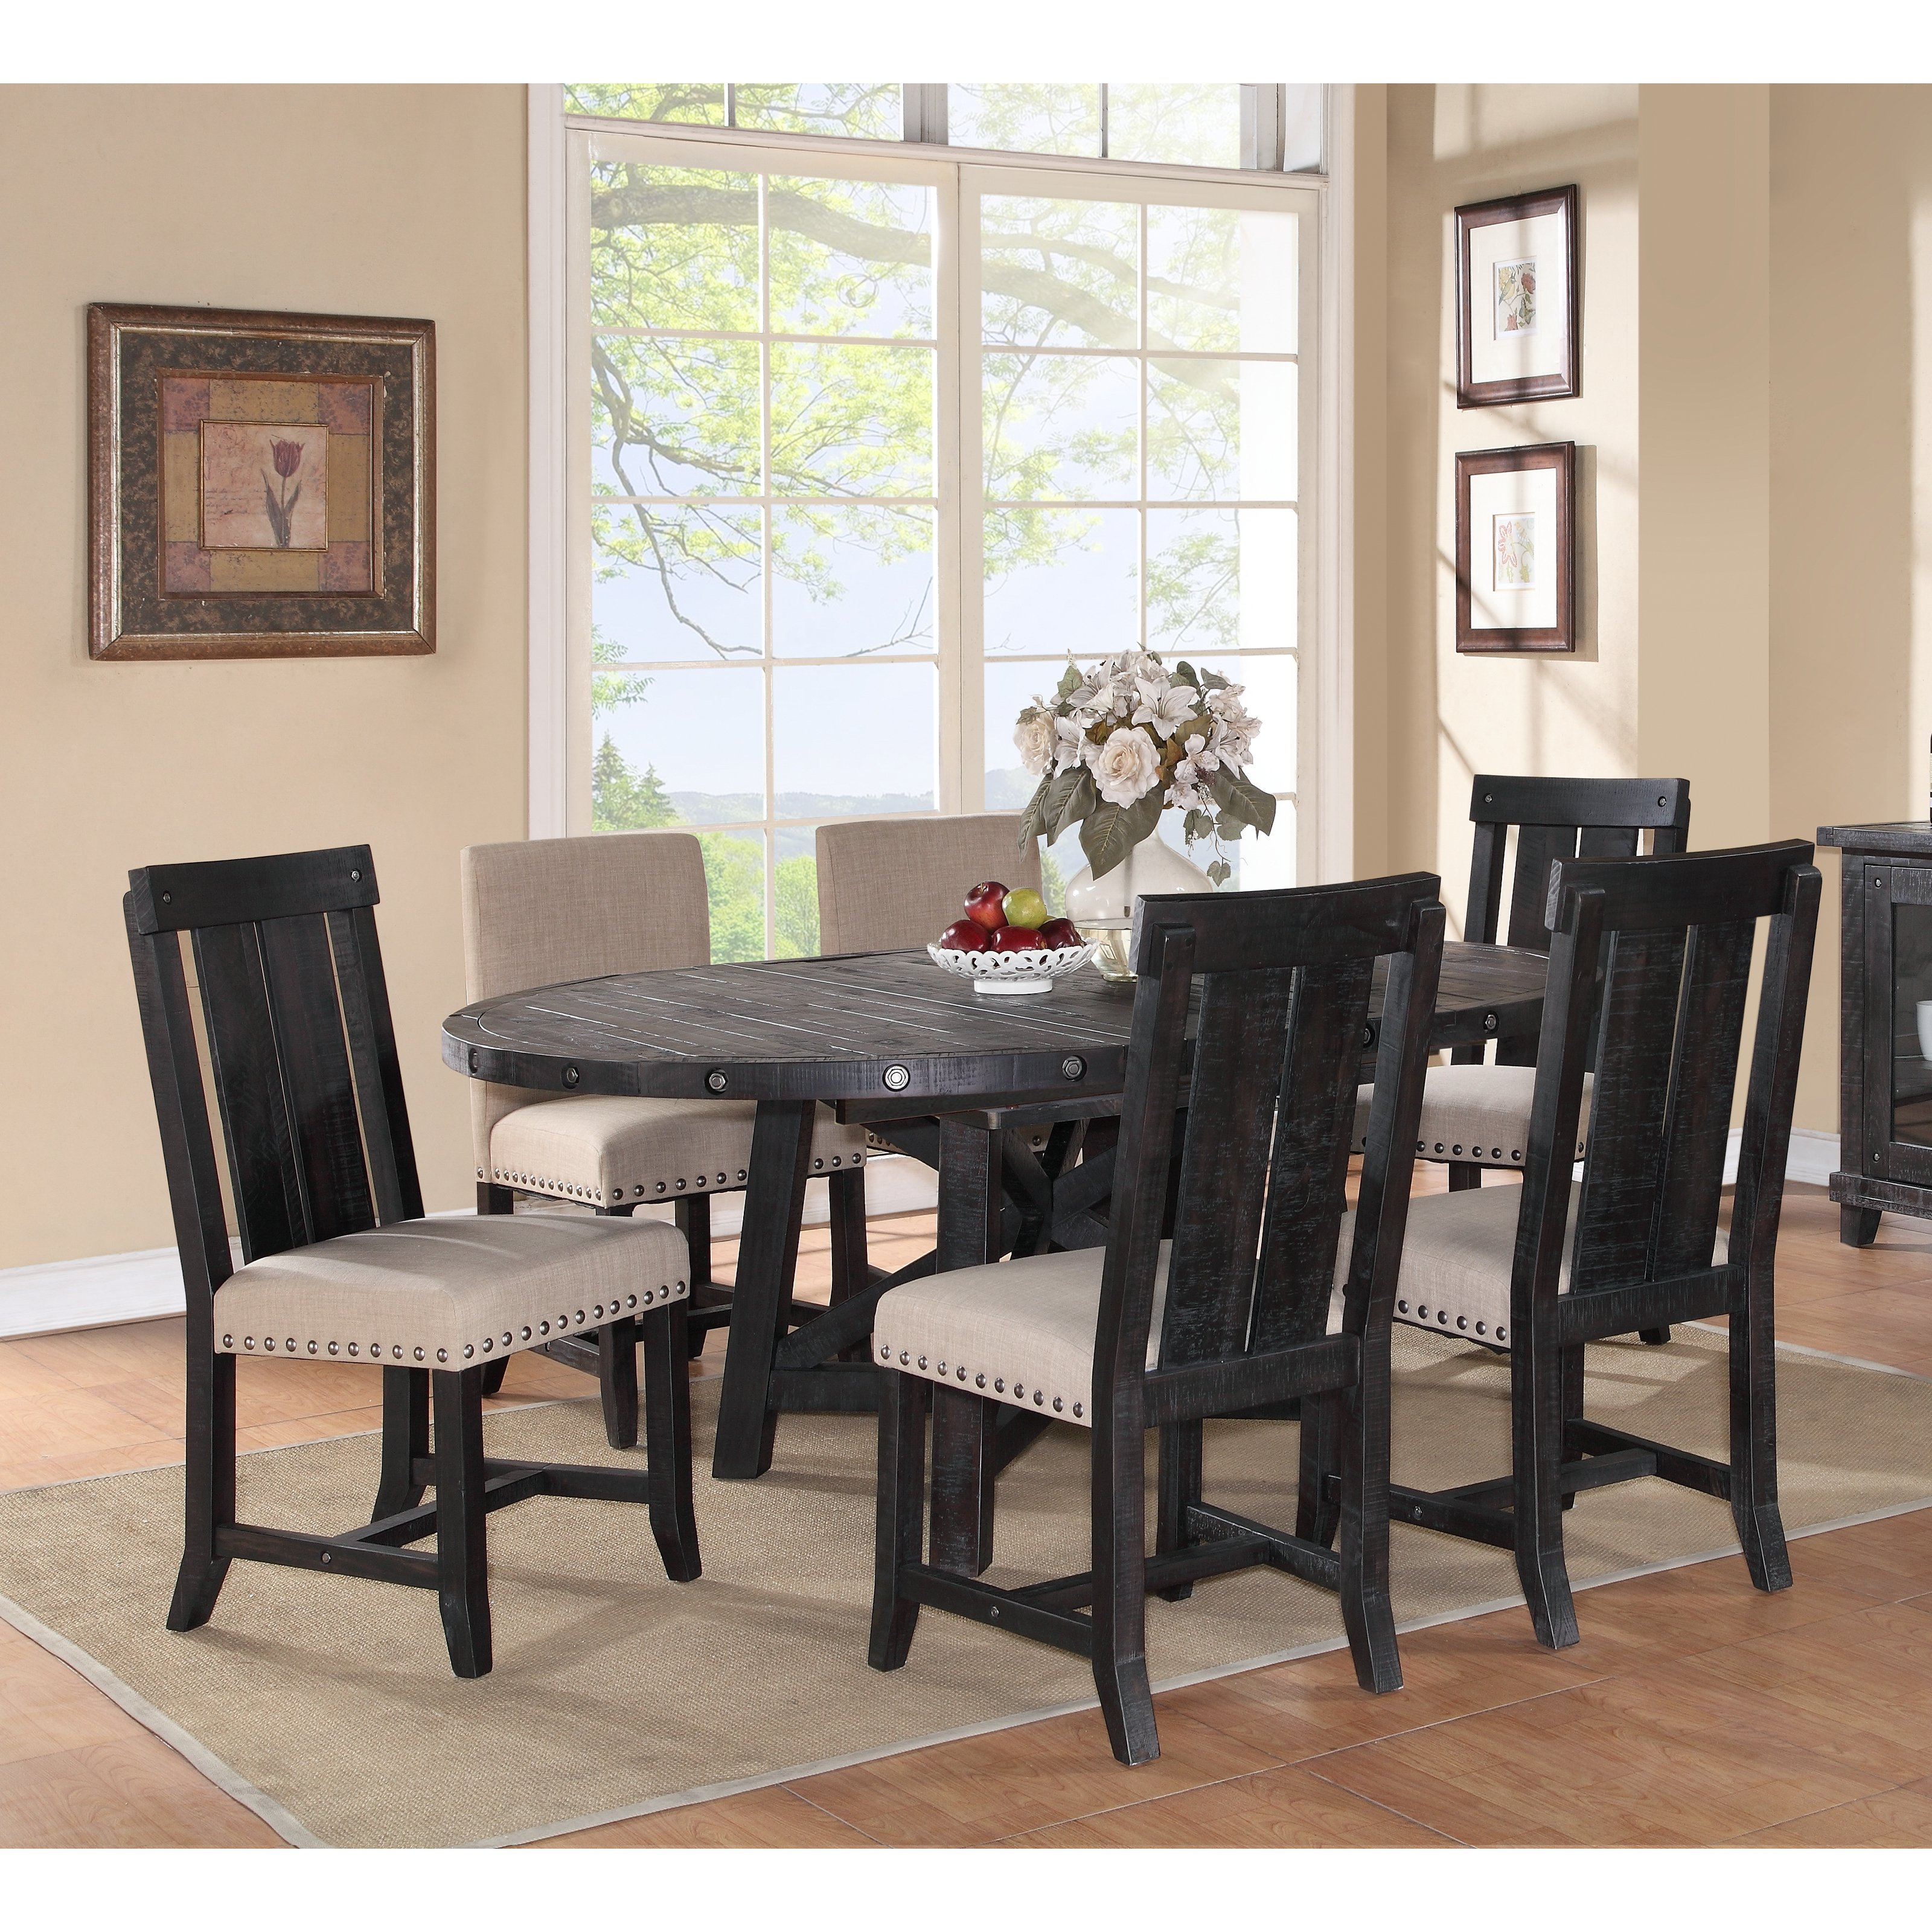 Modus Yosemite 7 Piece Oval Dining Table Set With Mixed Chairs 4 Wood 2 Upholstered